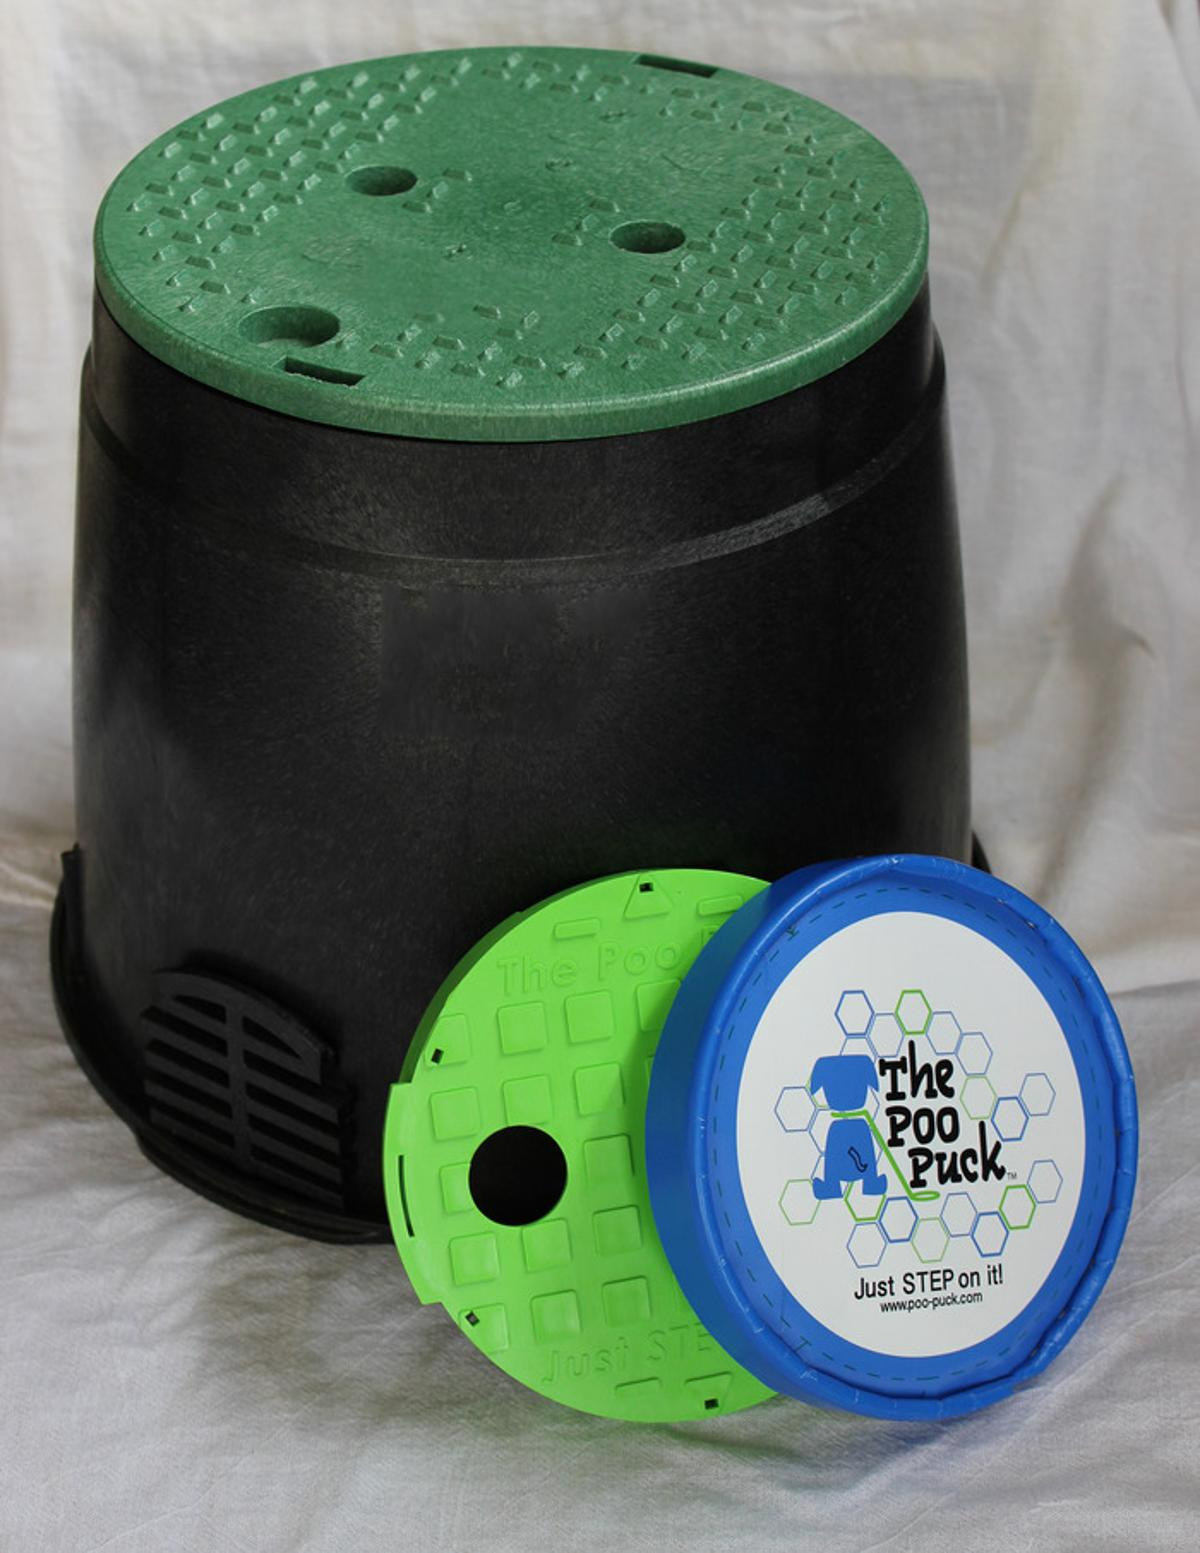 The Poo Puck and Poo Bin are designed to help clean up doggy do dos